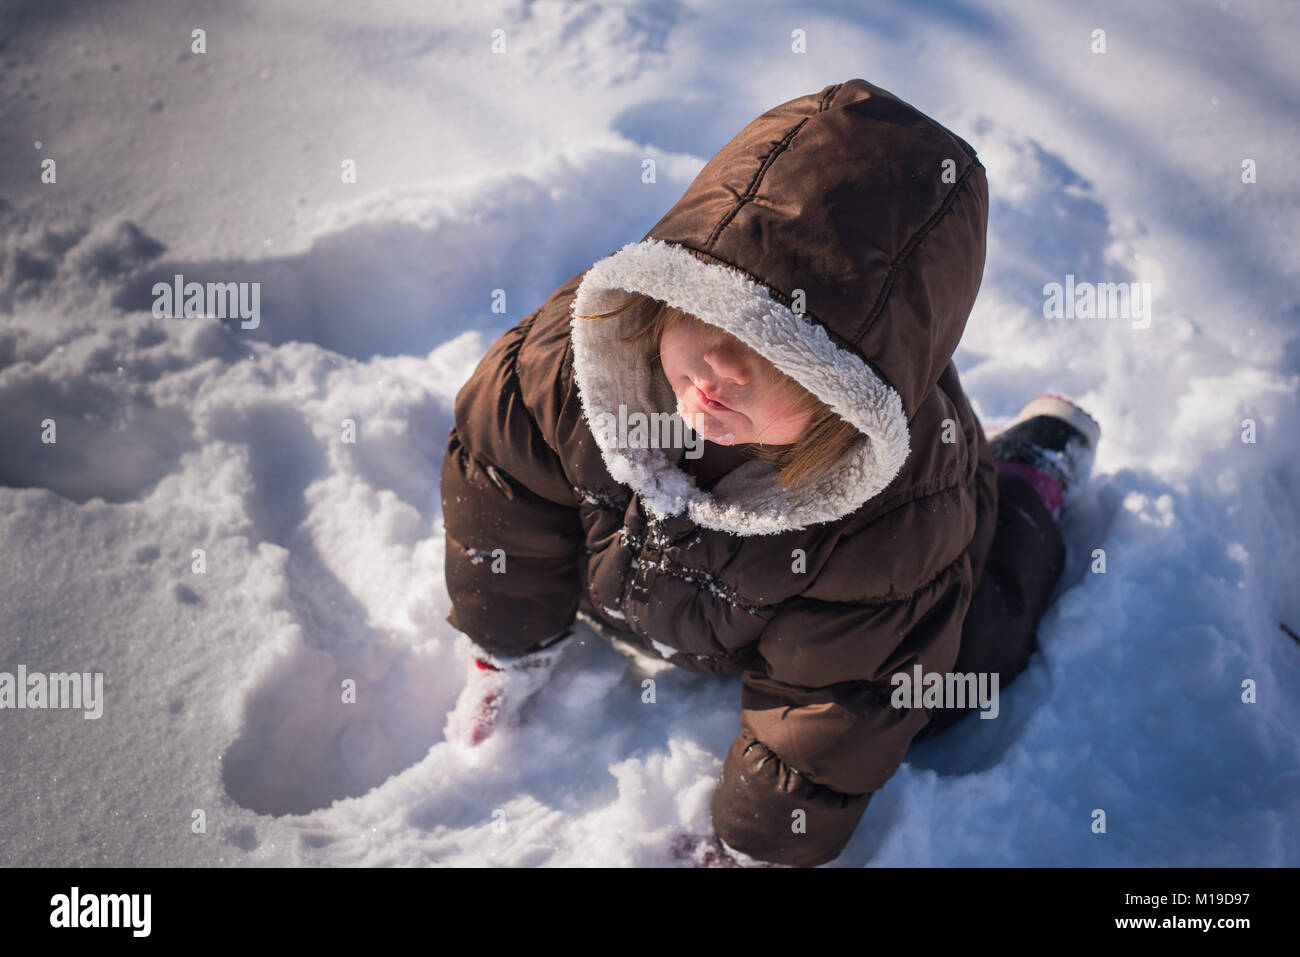 Looking down at a 3-year old toddler girl wearing a winter coat and sitting in the snow. - Stock Image